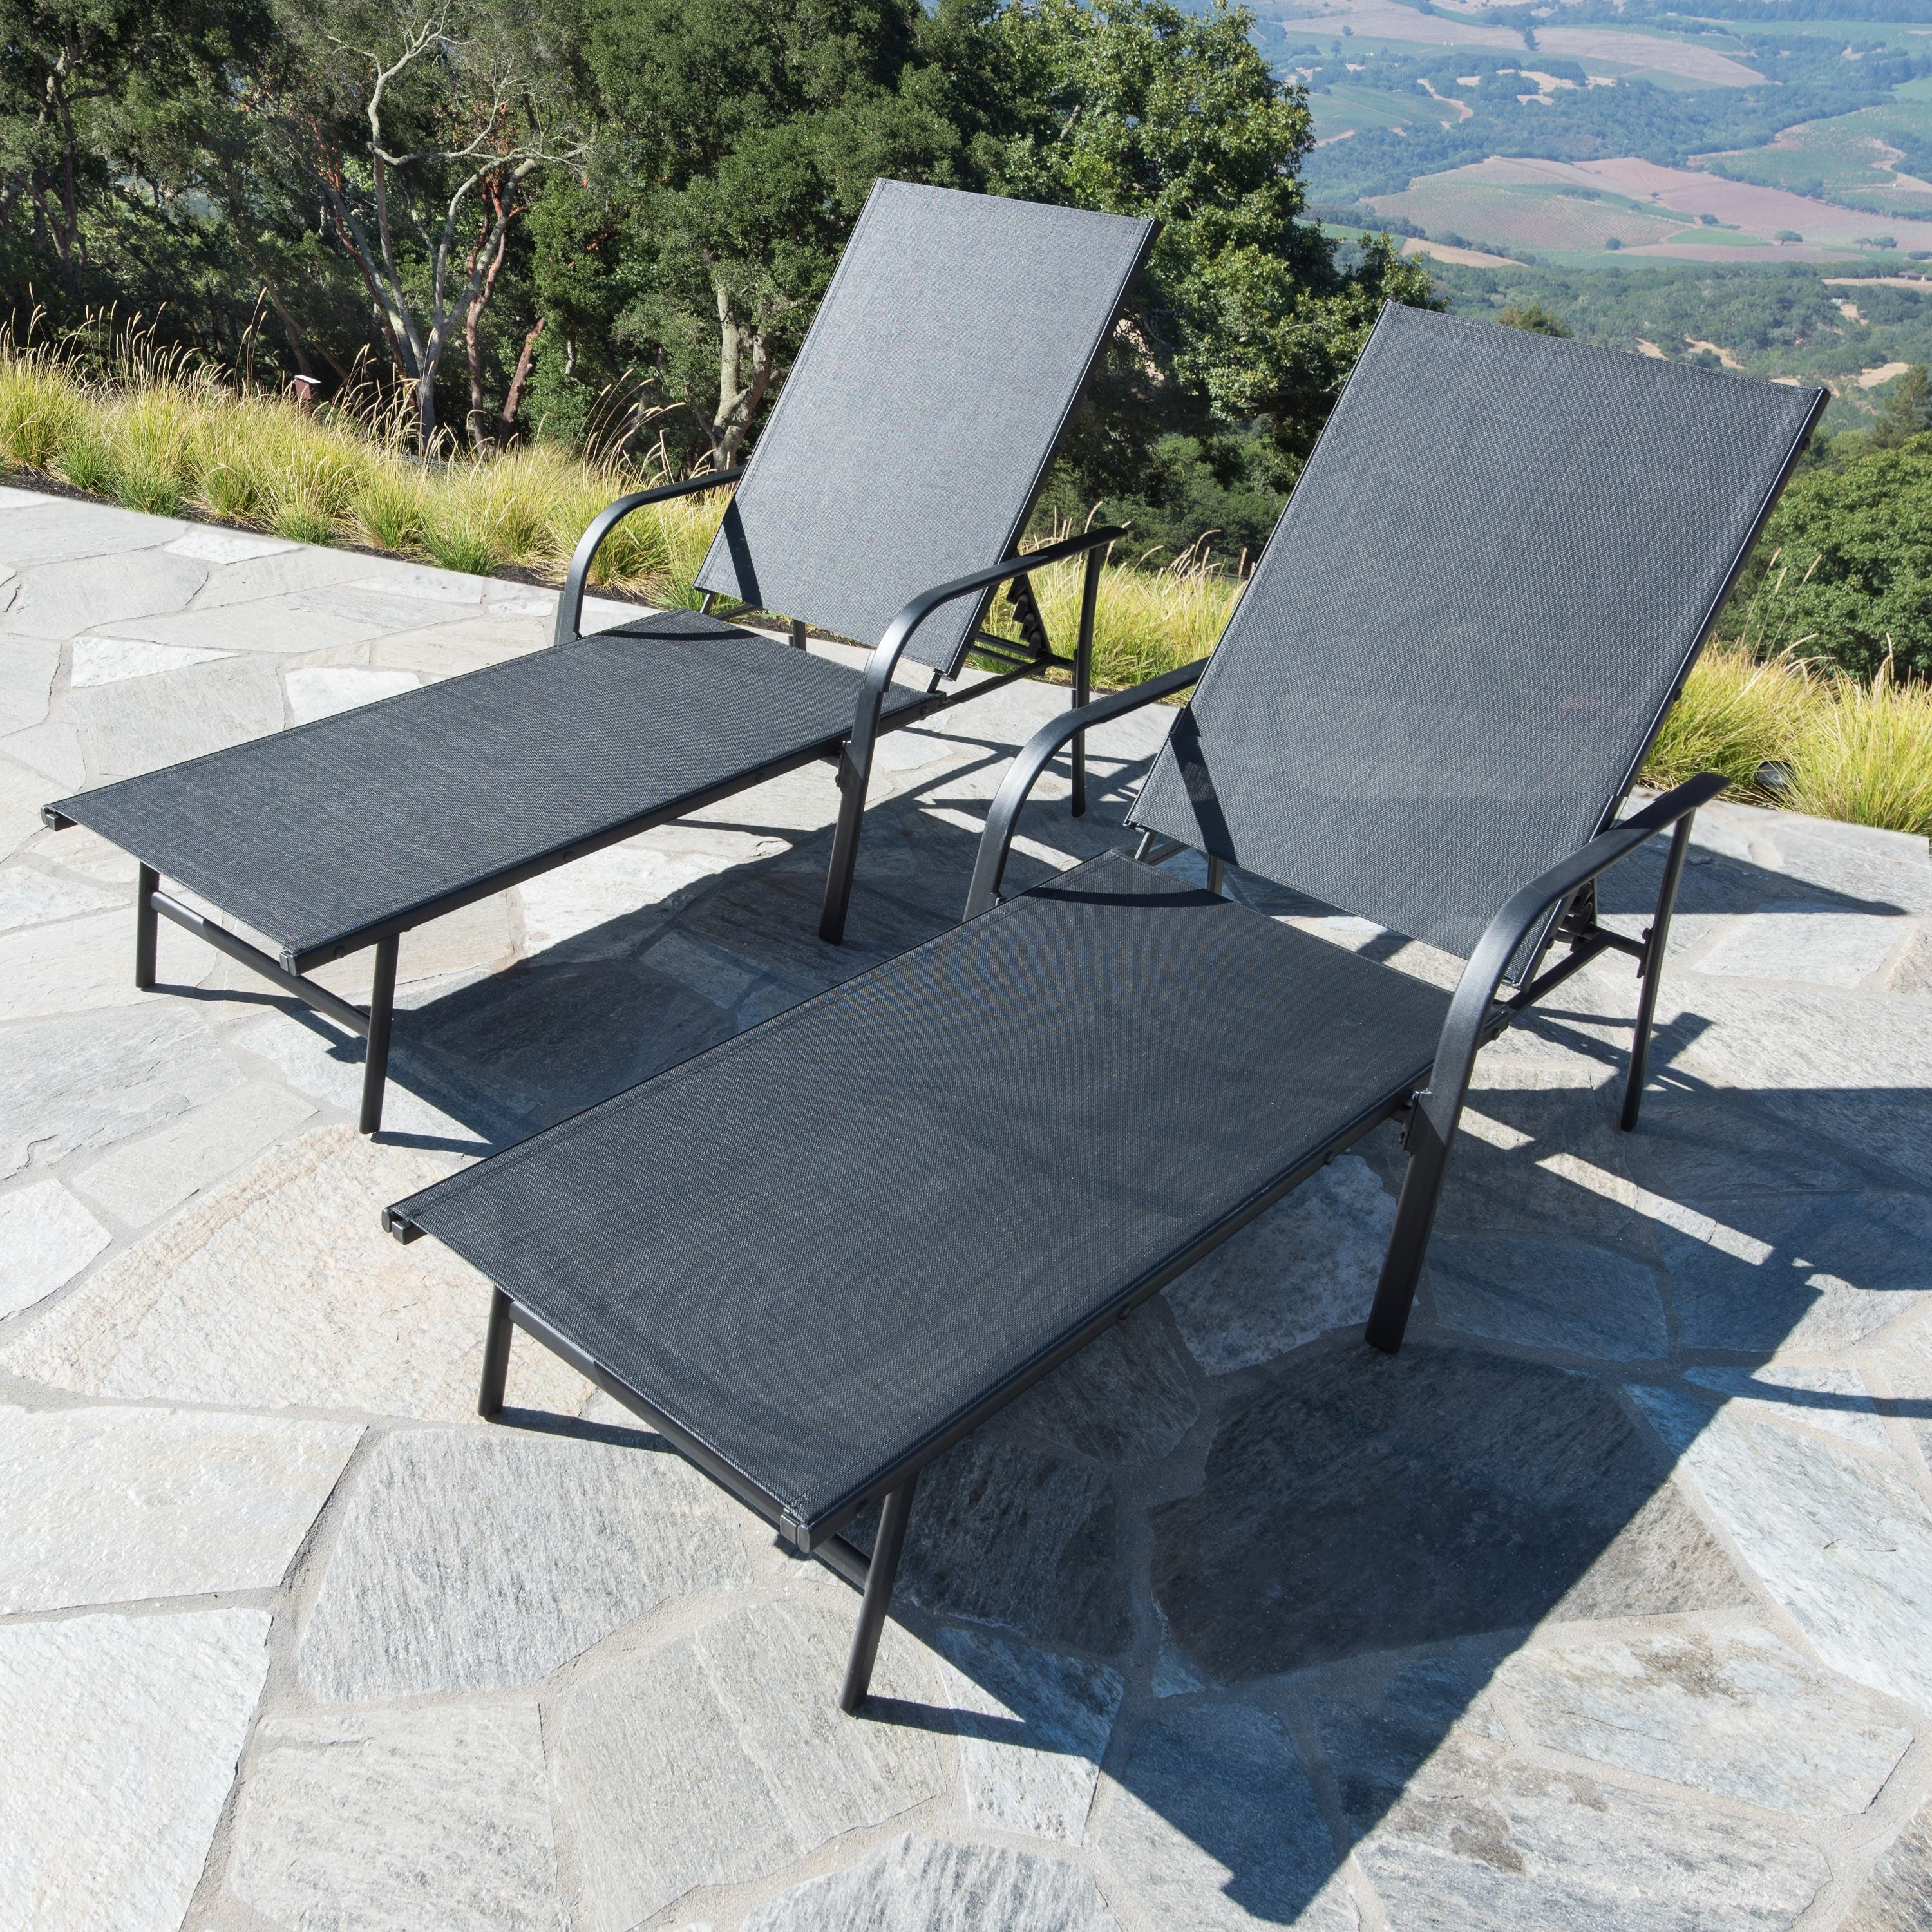 buy outdoor chaise lounges online at overstock our best patio furniture deals. Black Bedroom Furniture Sets. Home Design Ideas